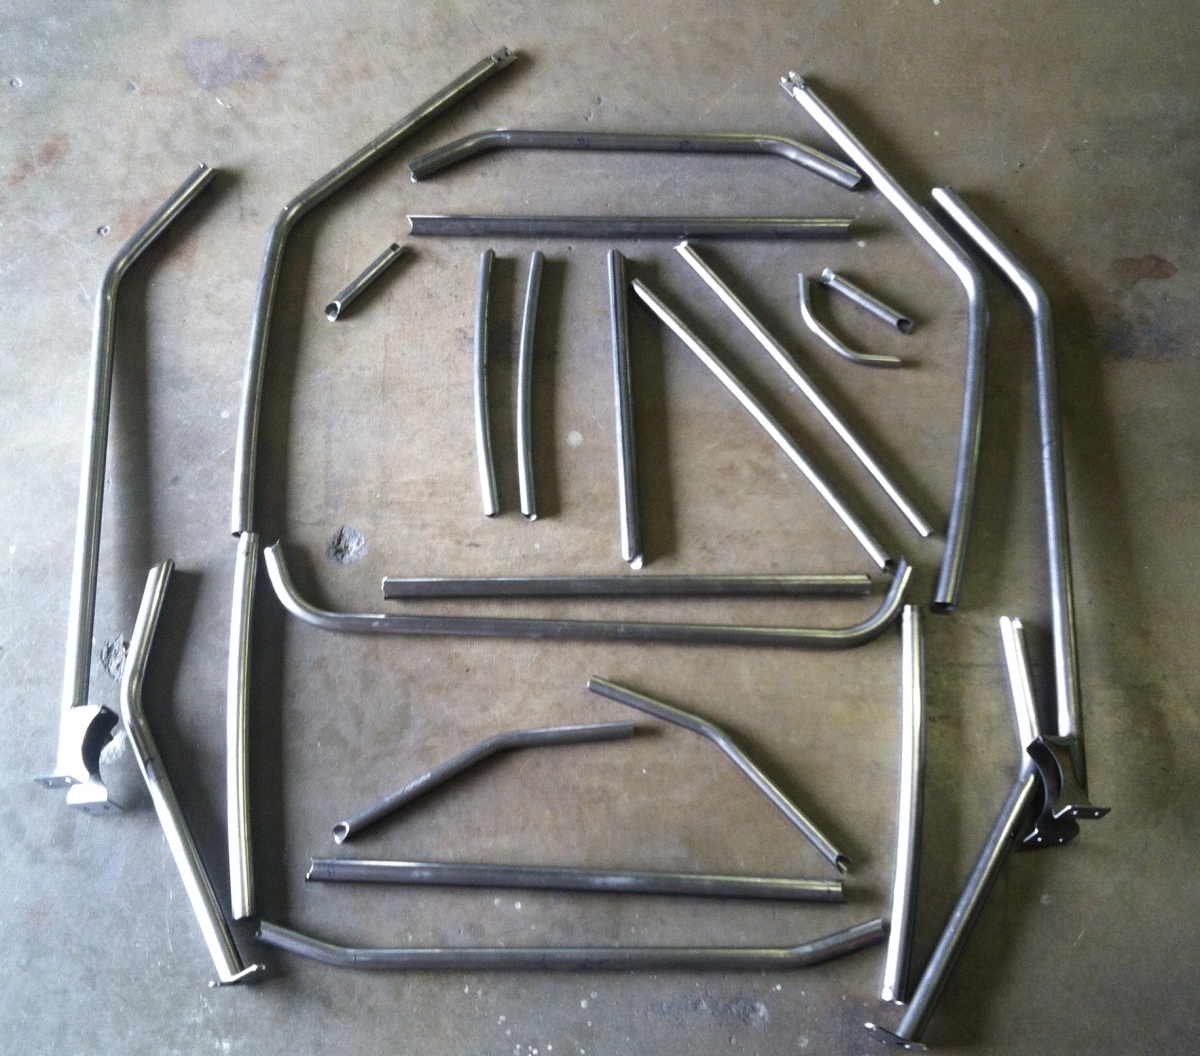 Finally Utvgiant Weld It Yourself Rzr 4 Cage Kits In